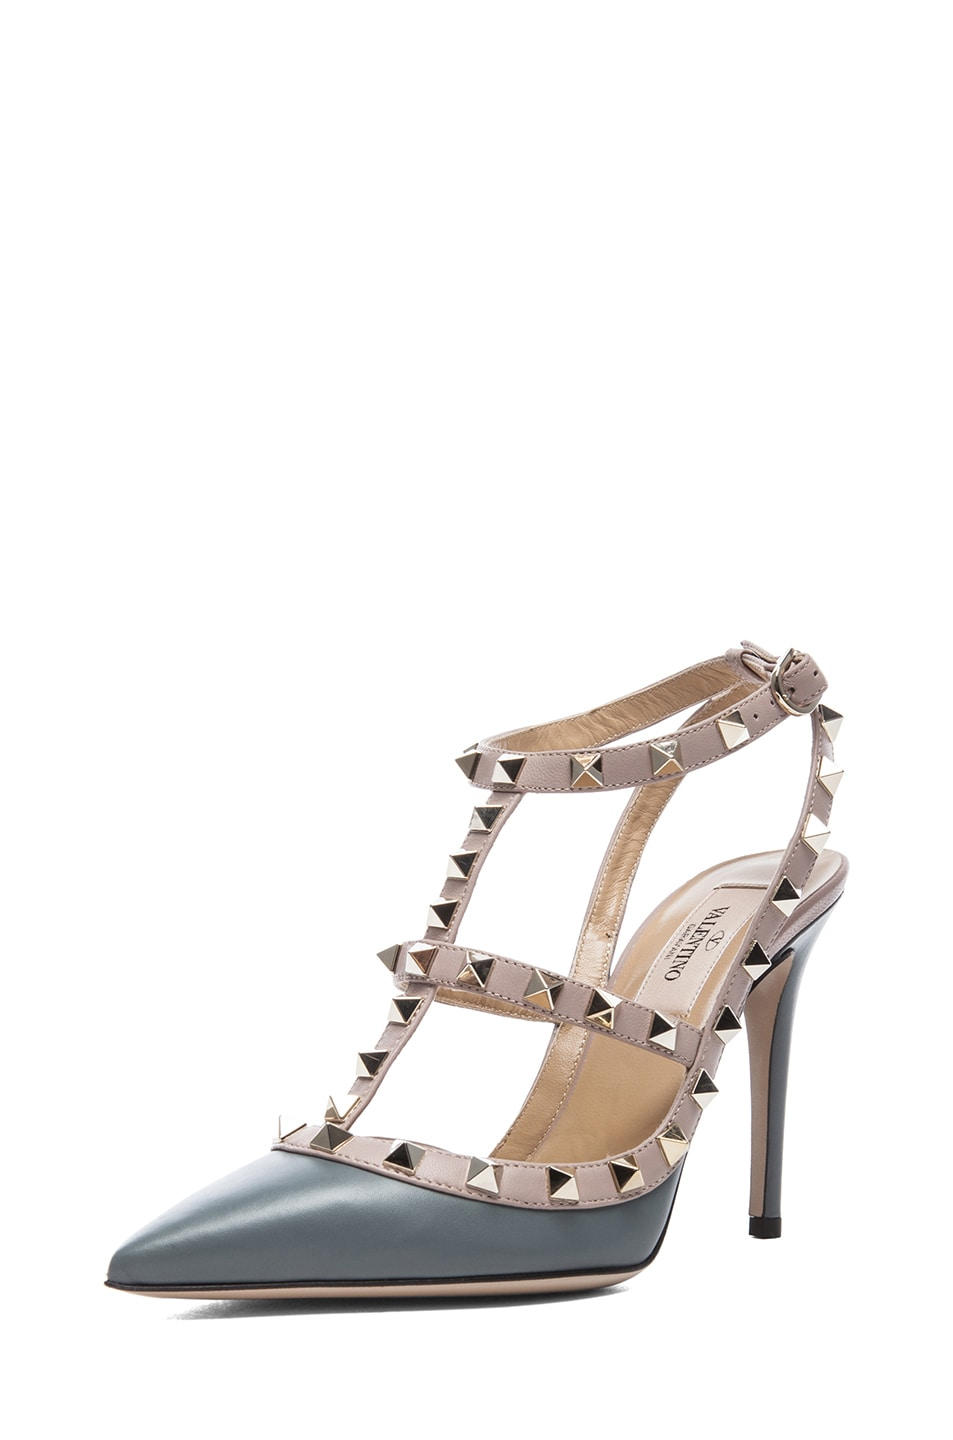 Image 2 of Valentino Rockstud Leather Slingbacks T.100 in Stone